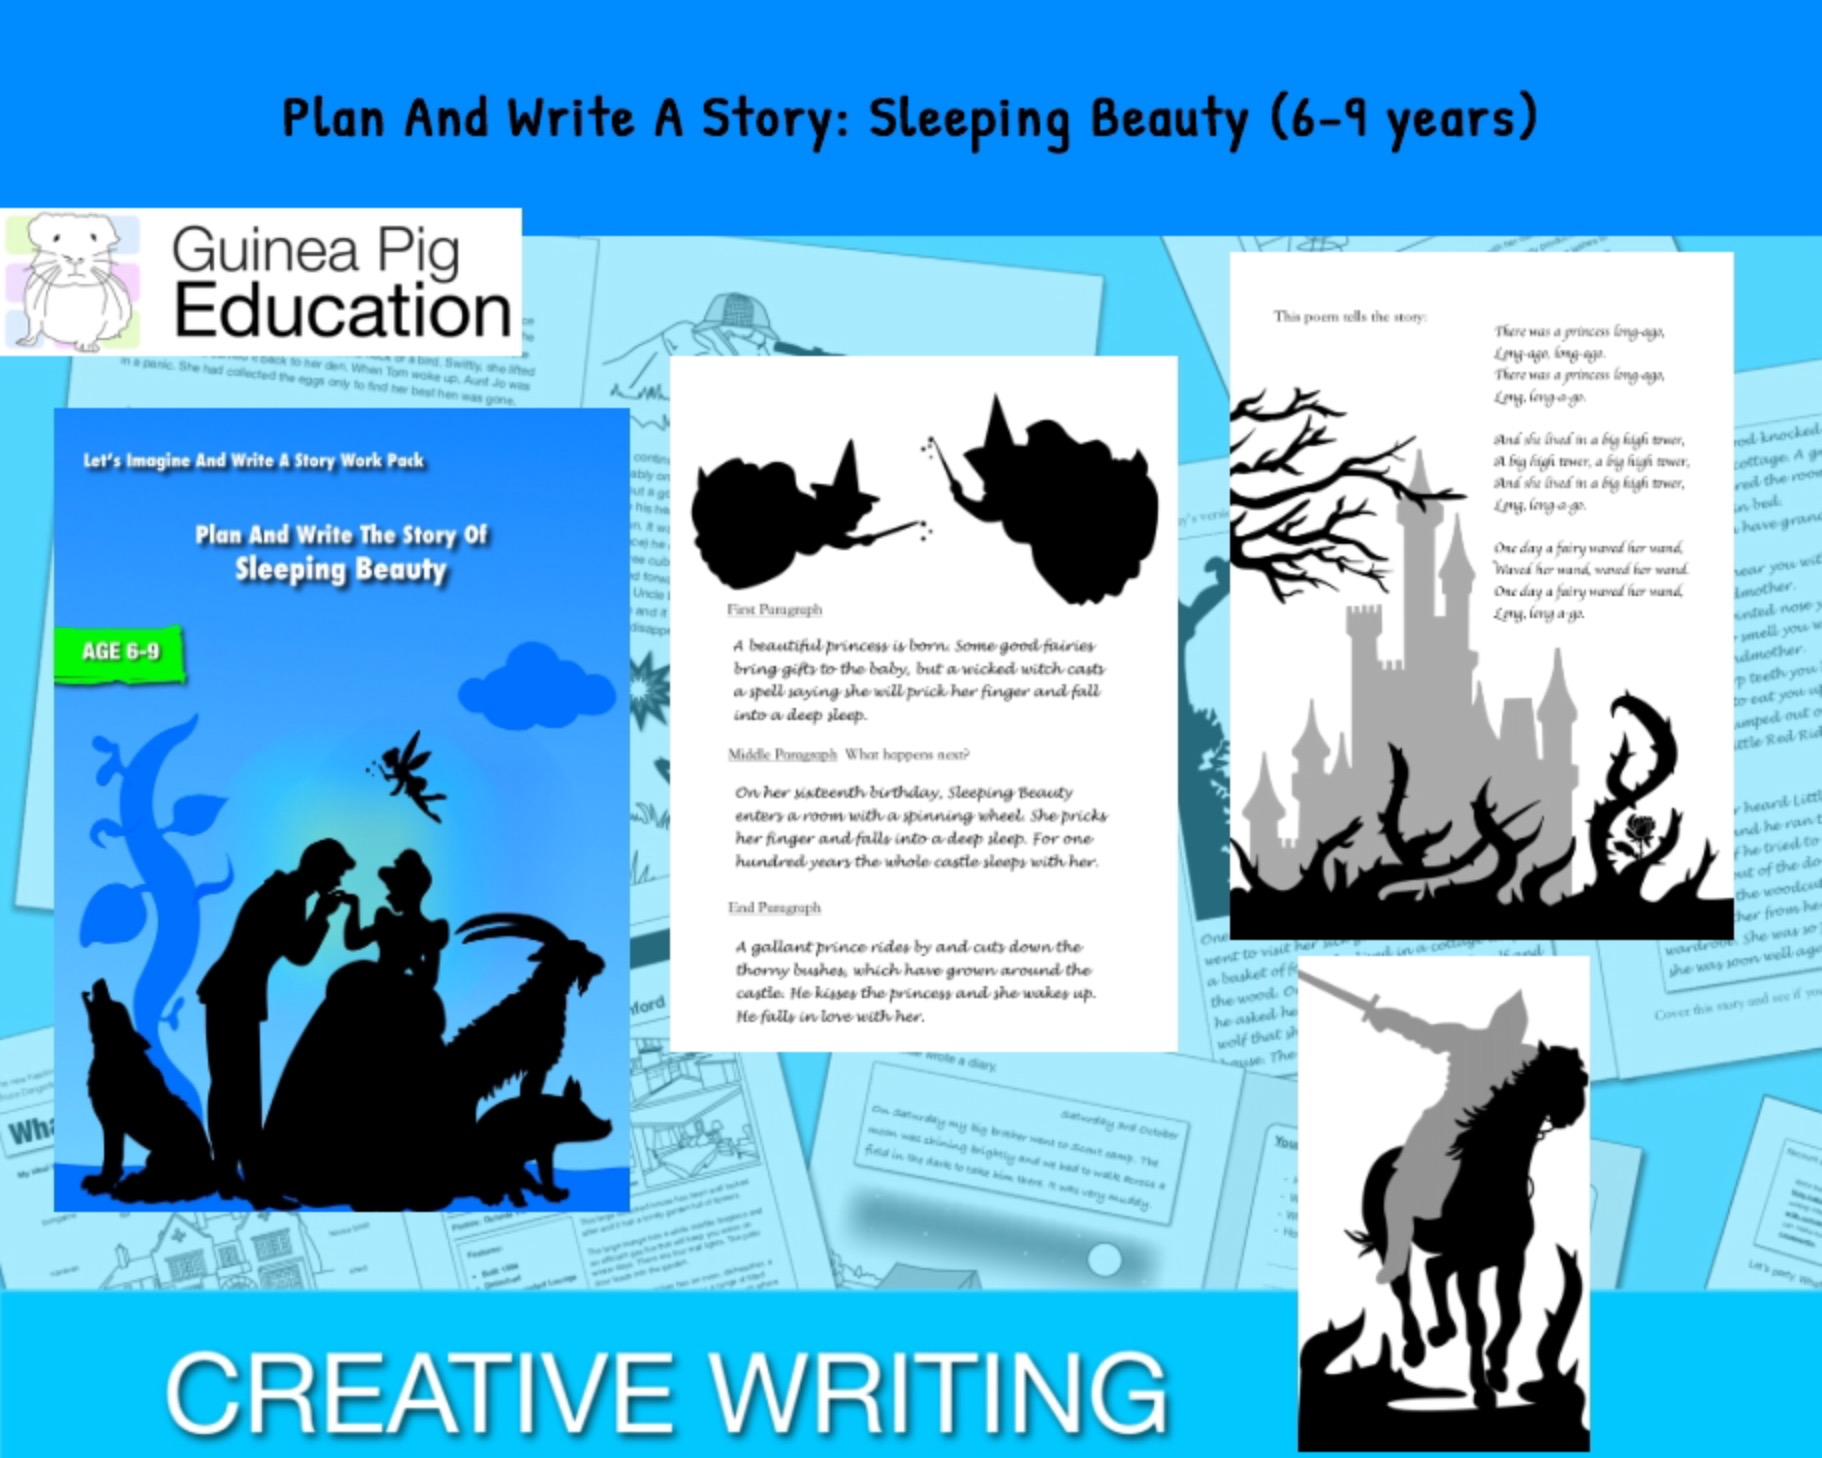 Plan And Write The Story Of Sleeping Beauty' (6-9 years) - Guinea Pig  Education Shop